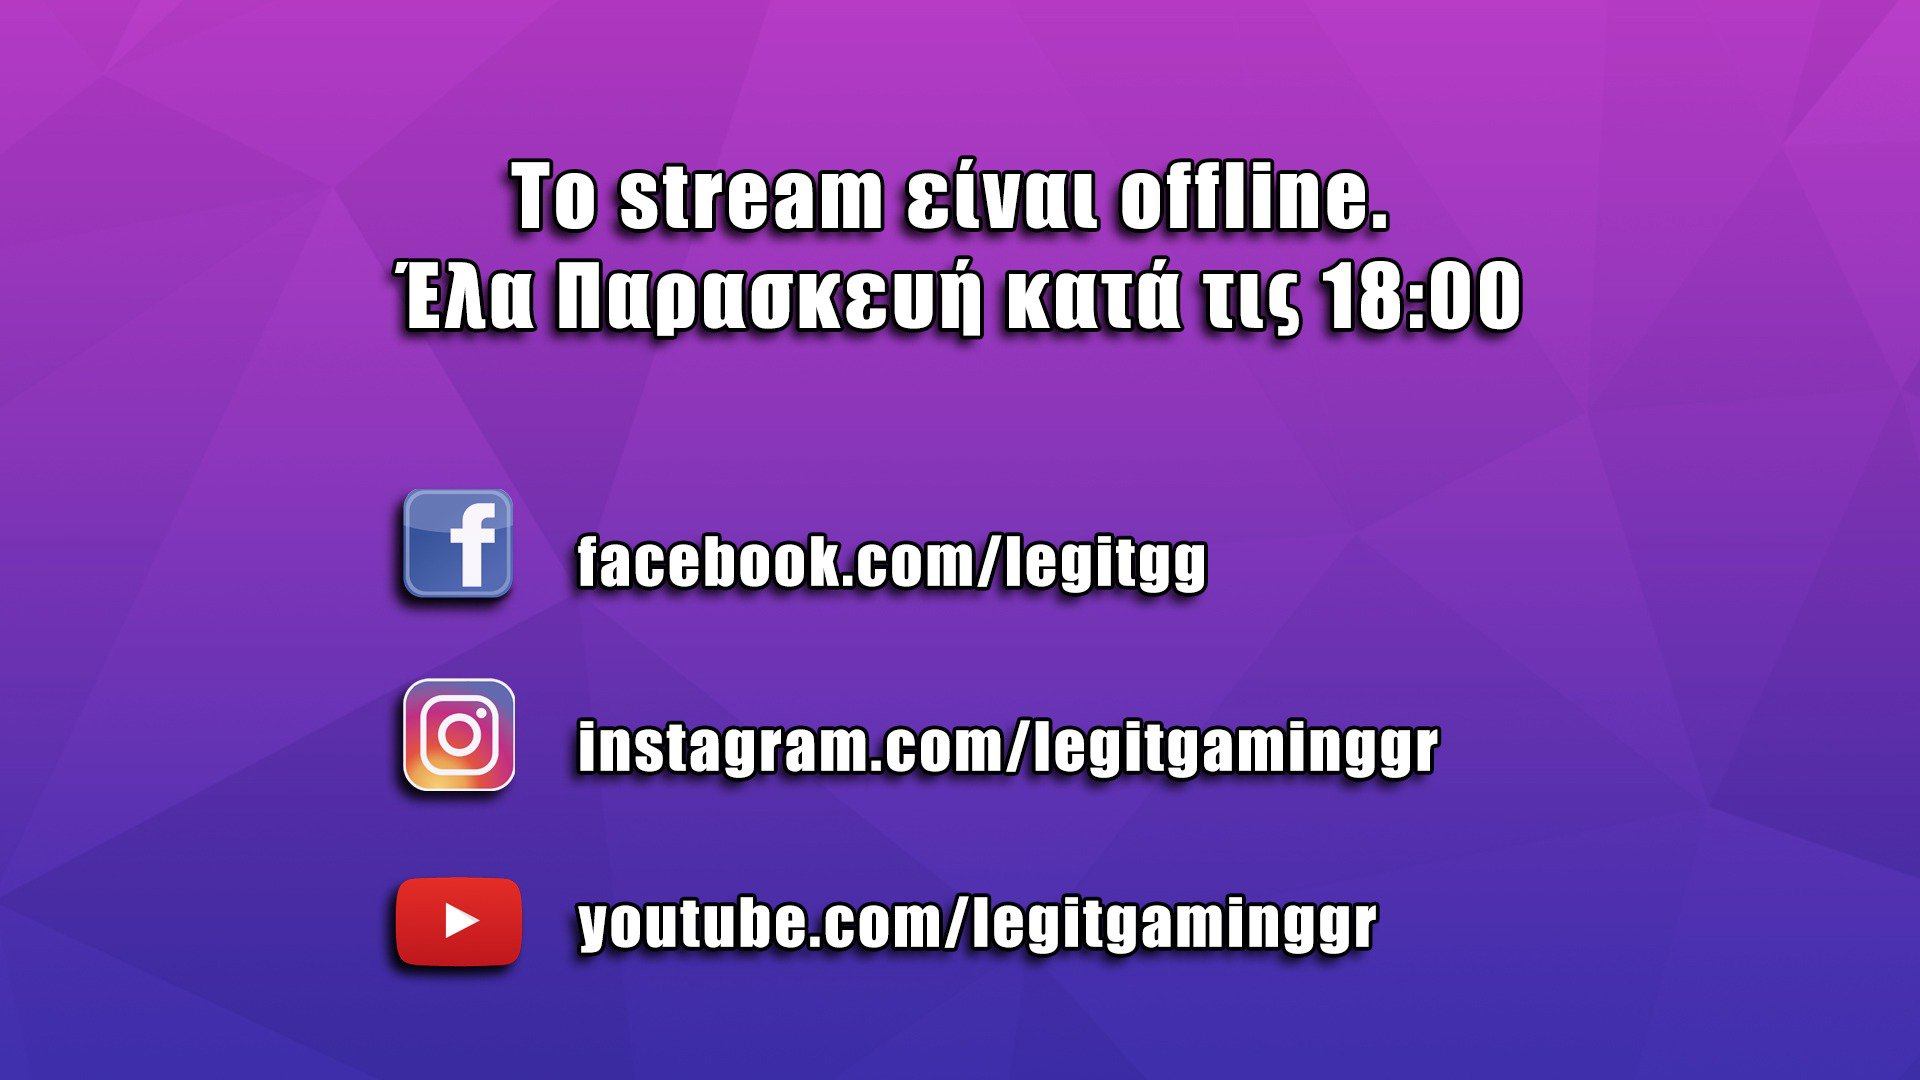 Twitch stream of LegitGamingGR